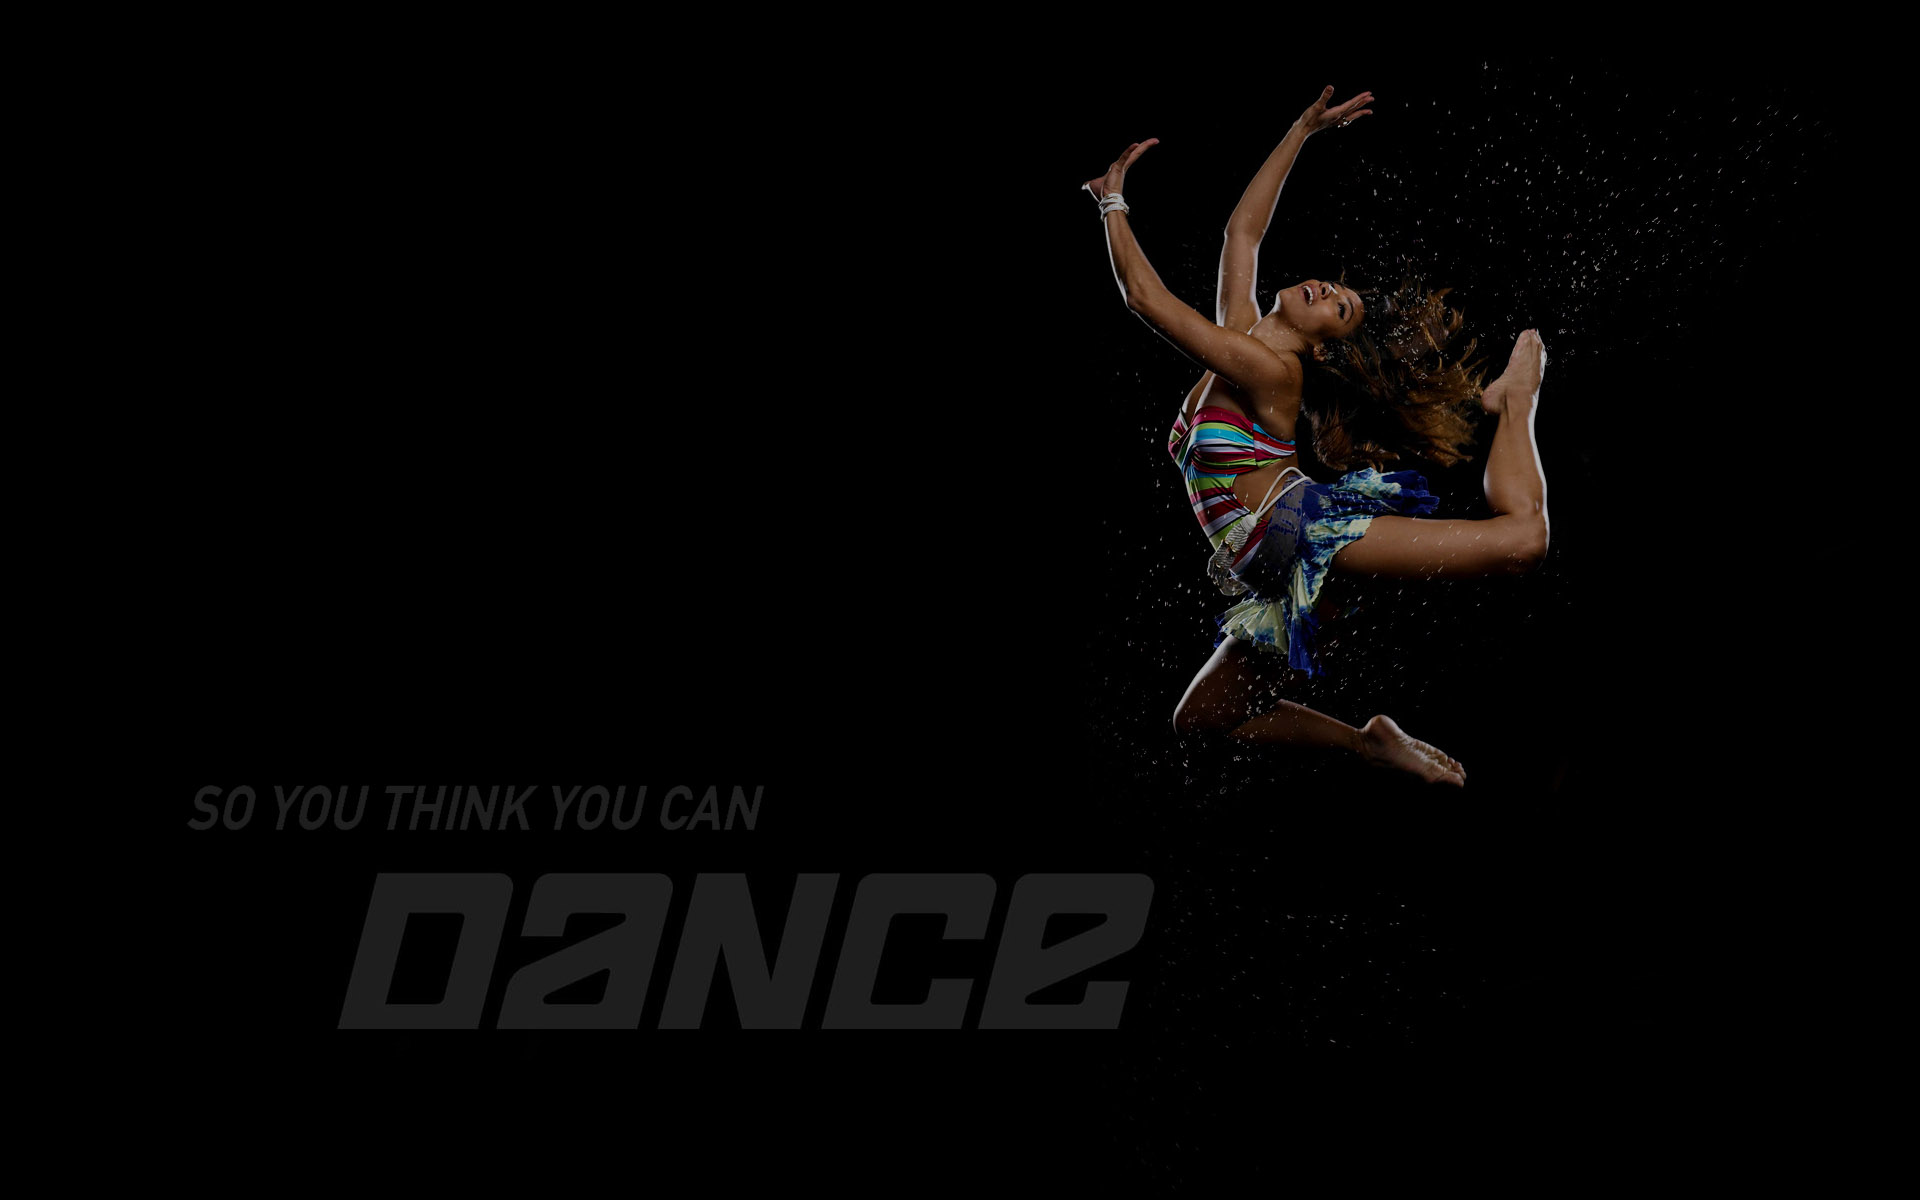 So You Think You Can Dance Full Hd Wallpaper And